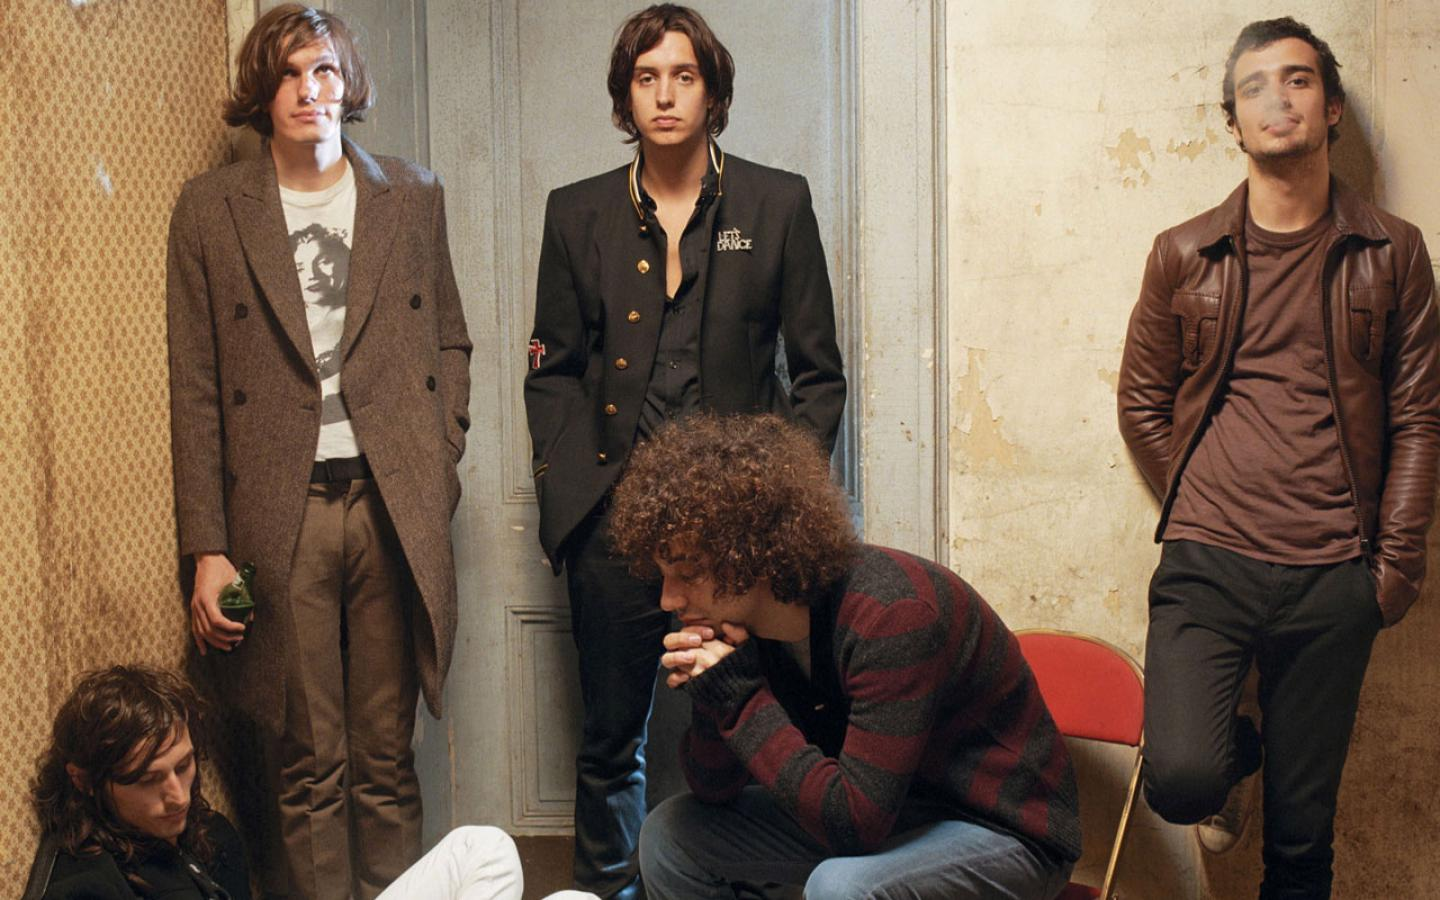 wallpaper  The Strokes Fans 1440x900